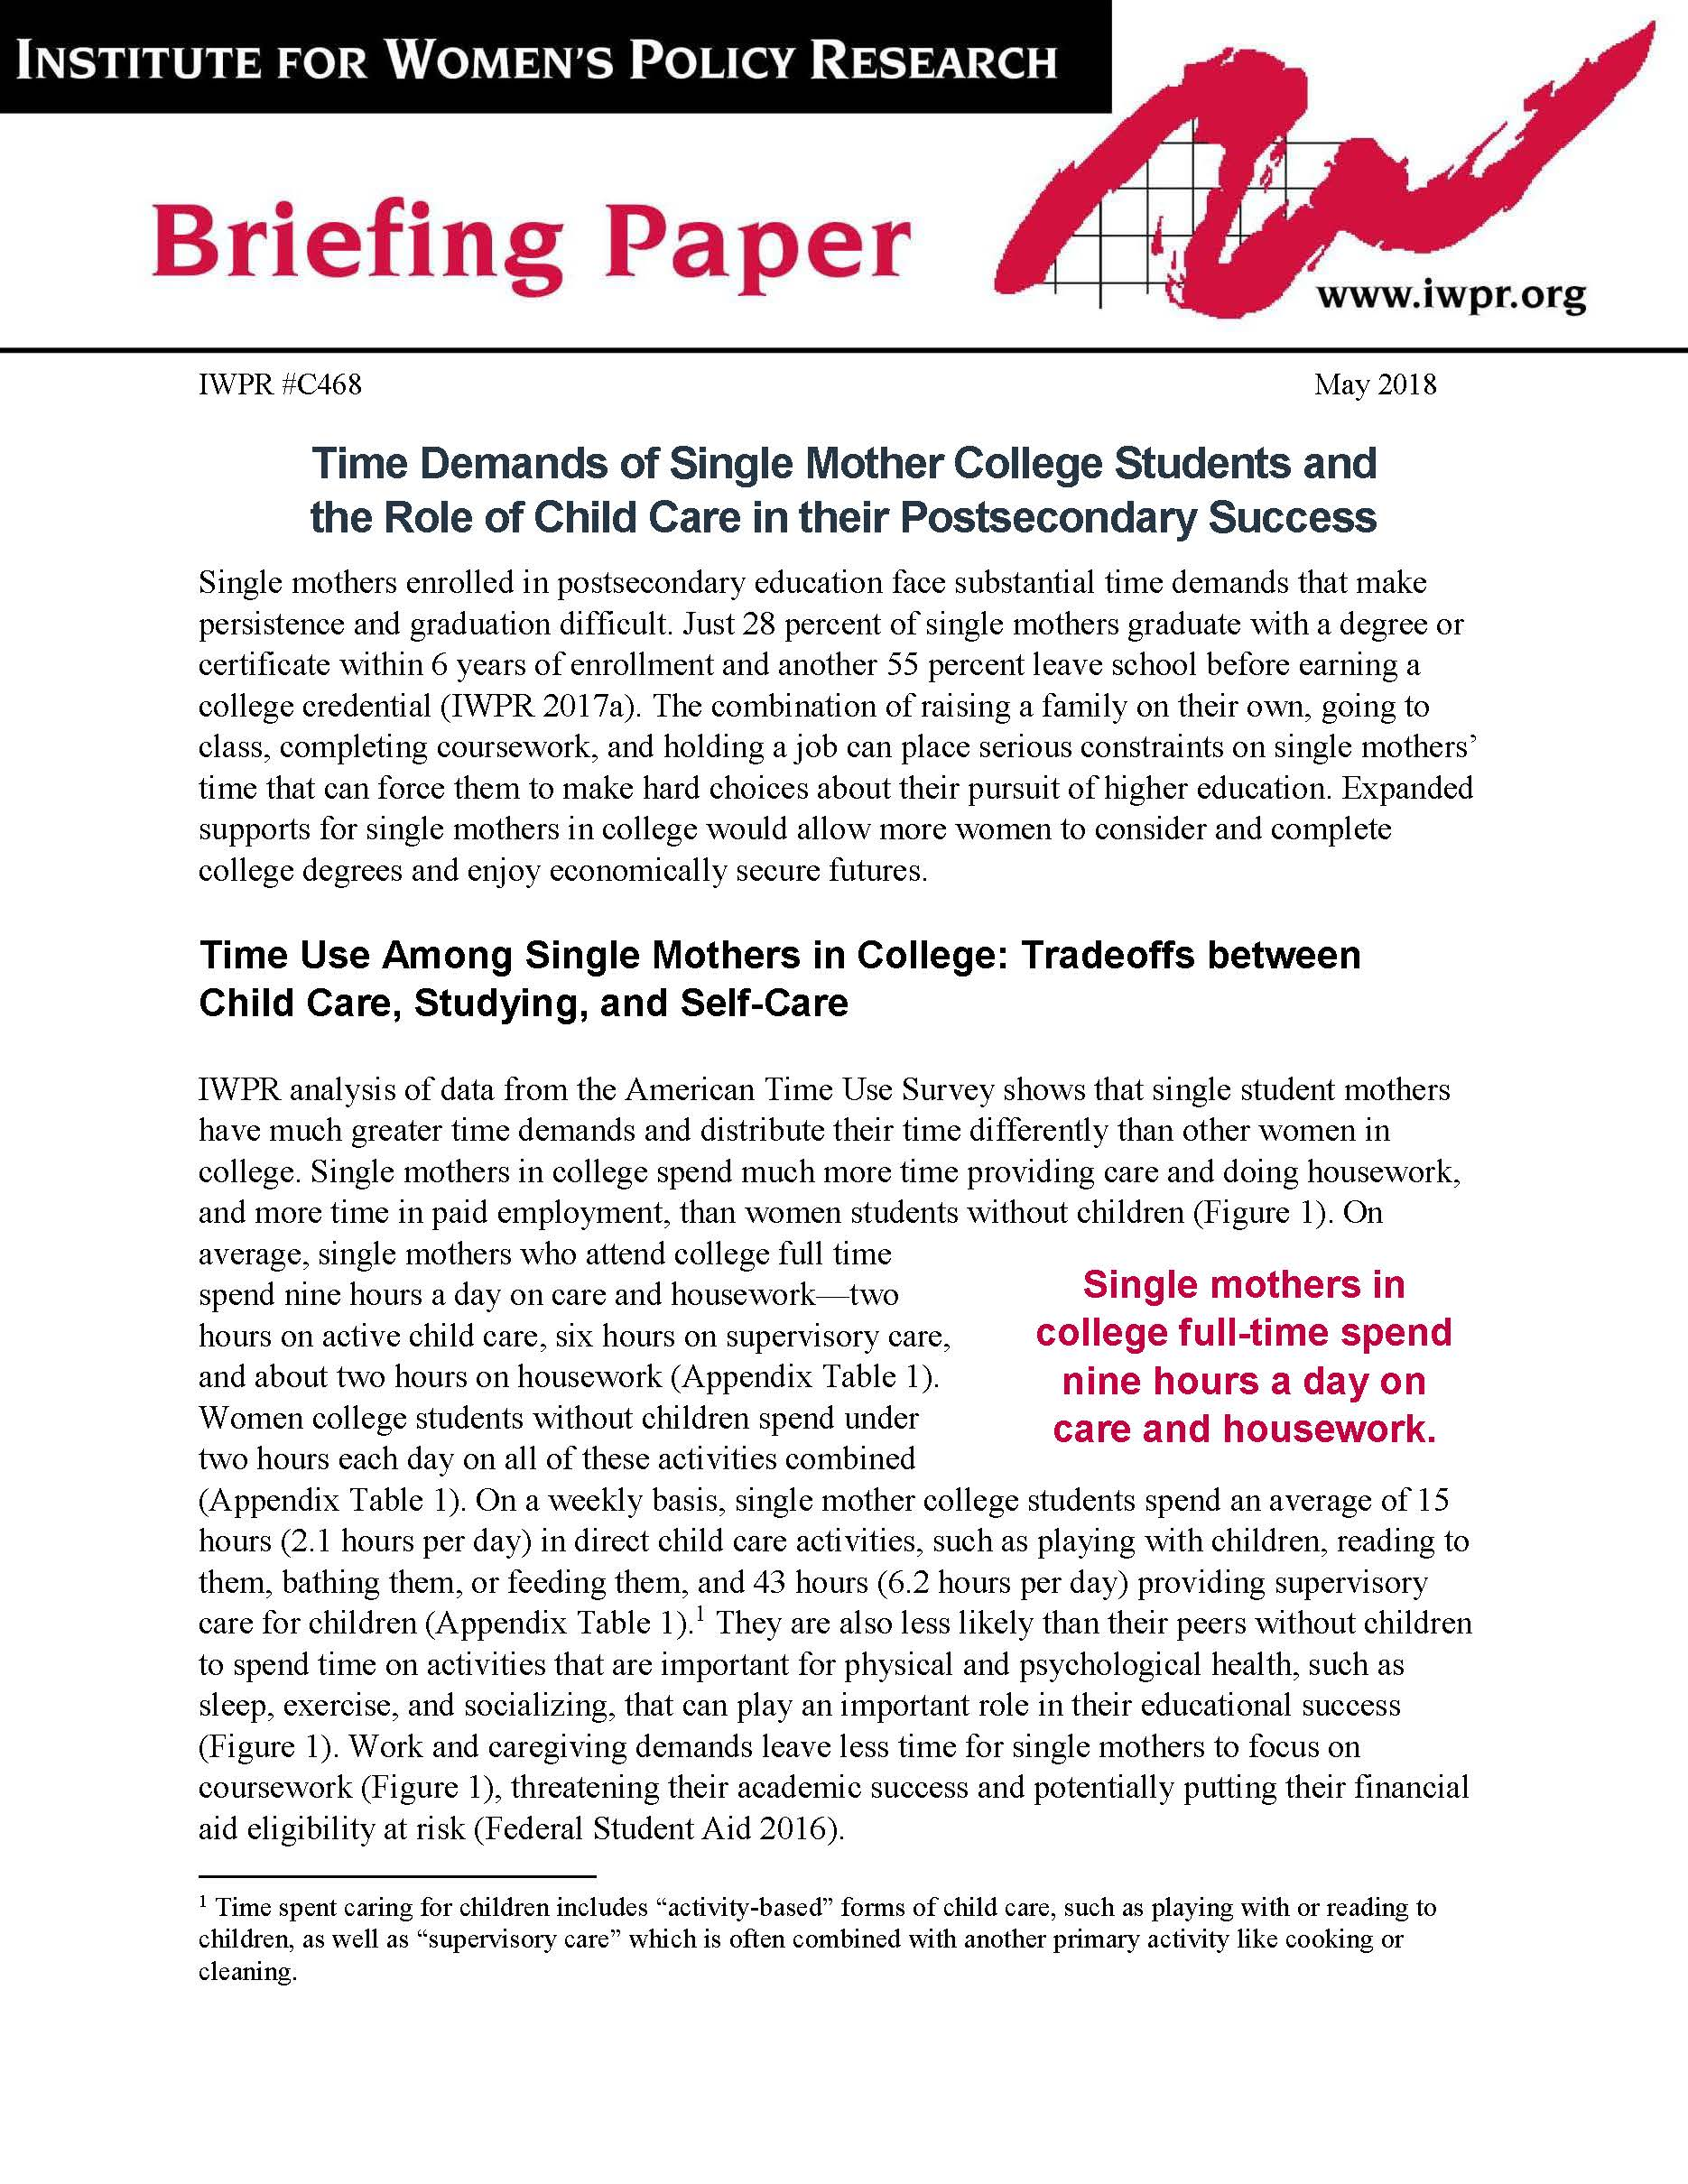 Time Demands of Single Mother College Students and the Role of Childcare in their Postsecondary Success